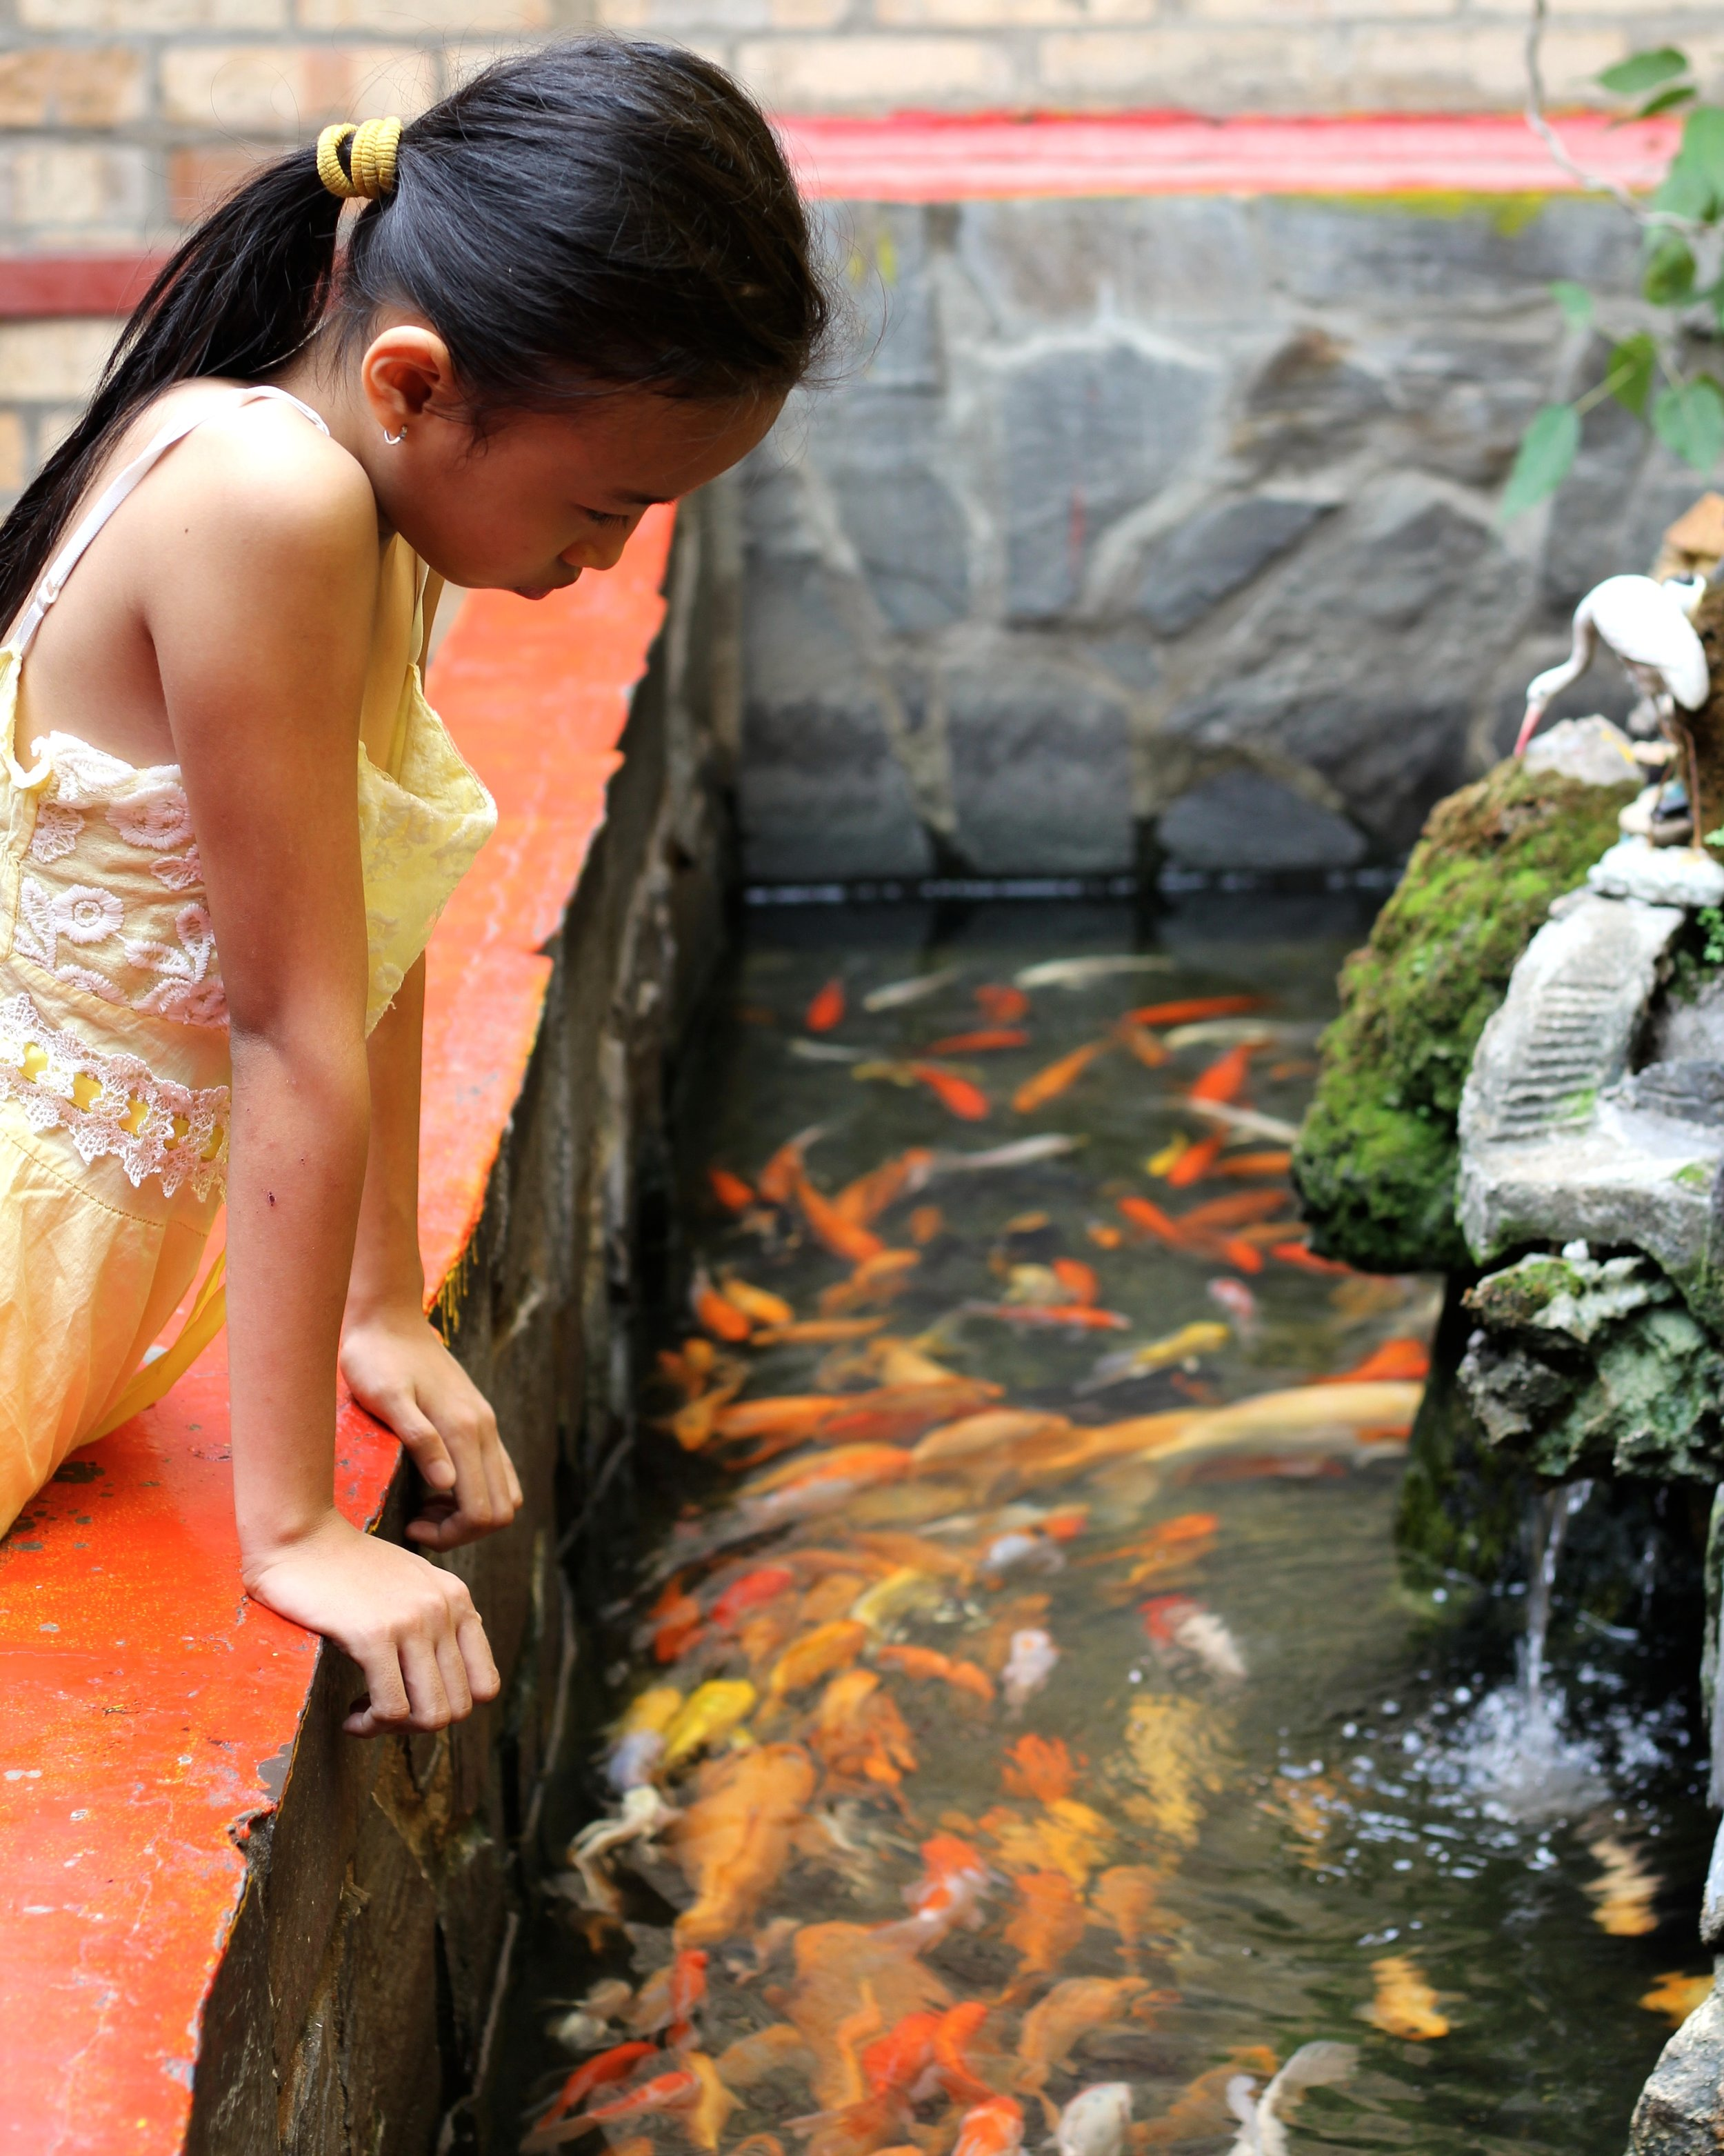 A girl peacefully observing the Koi fish in a pagoda pond in Ho Chi Minh City.